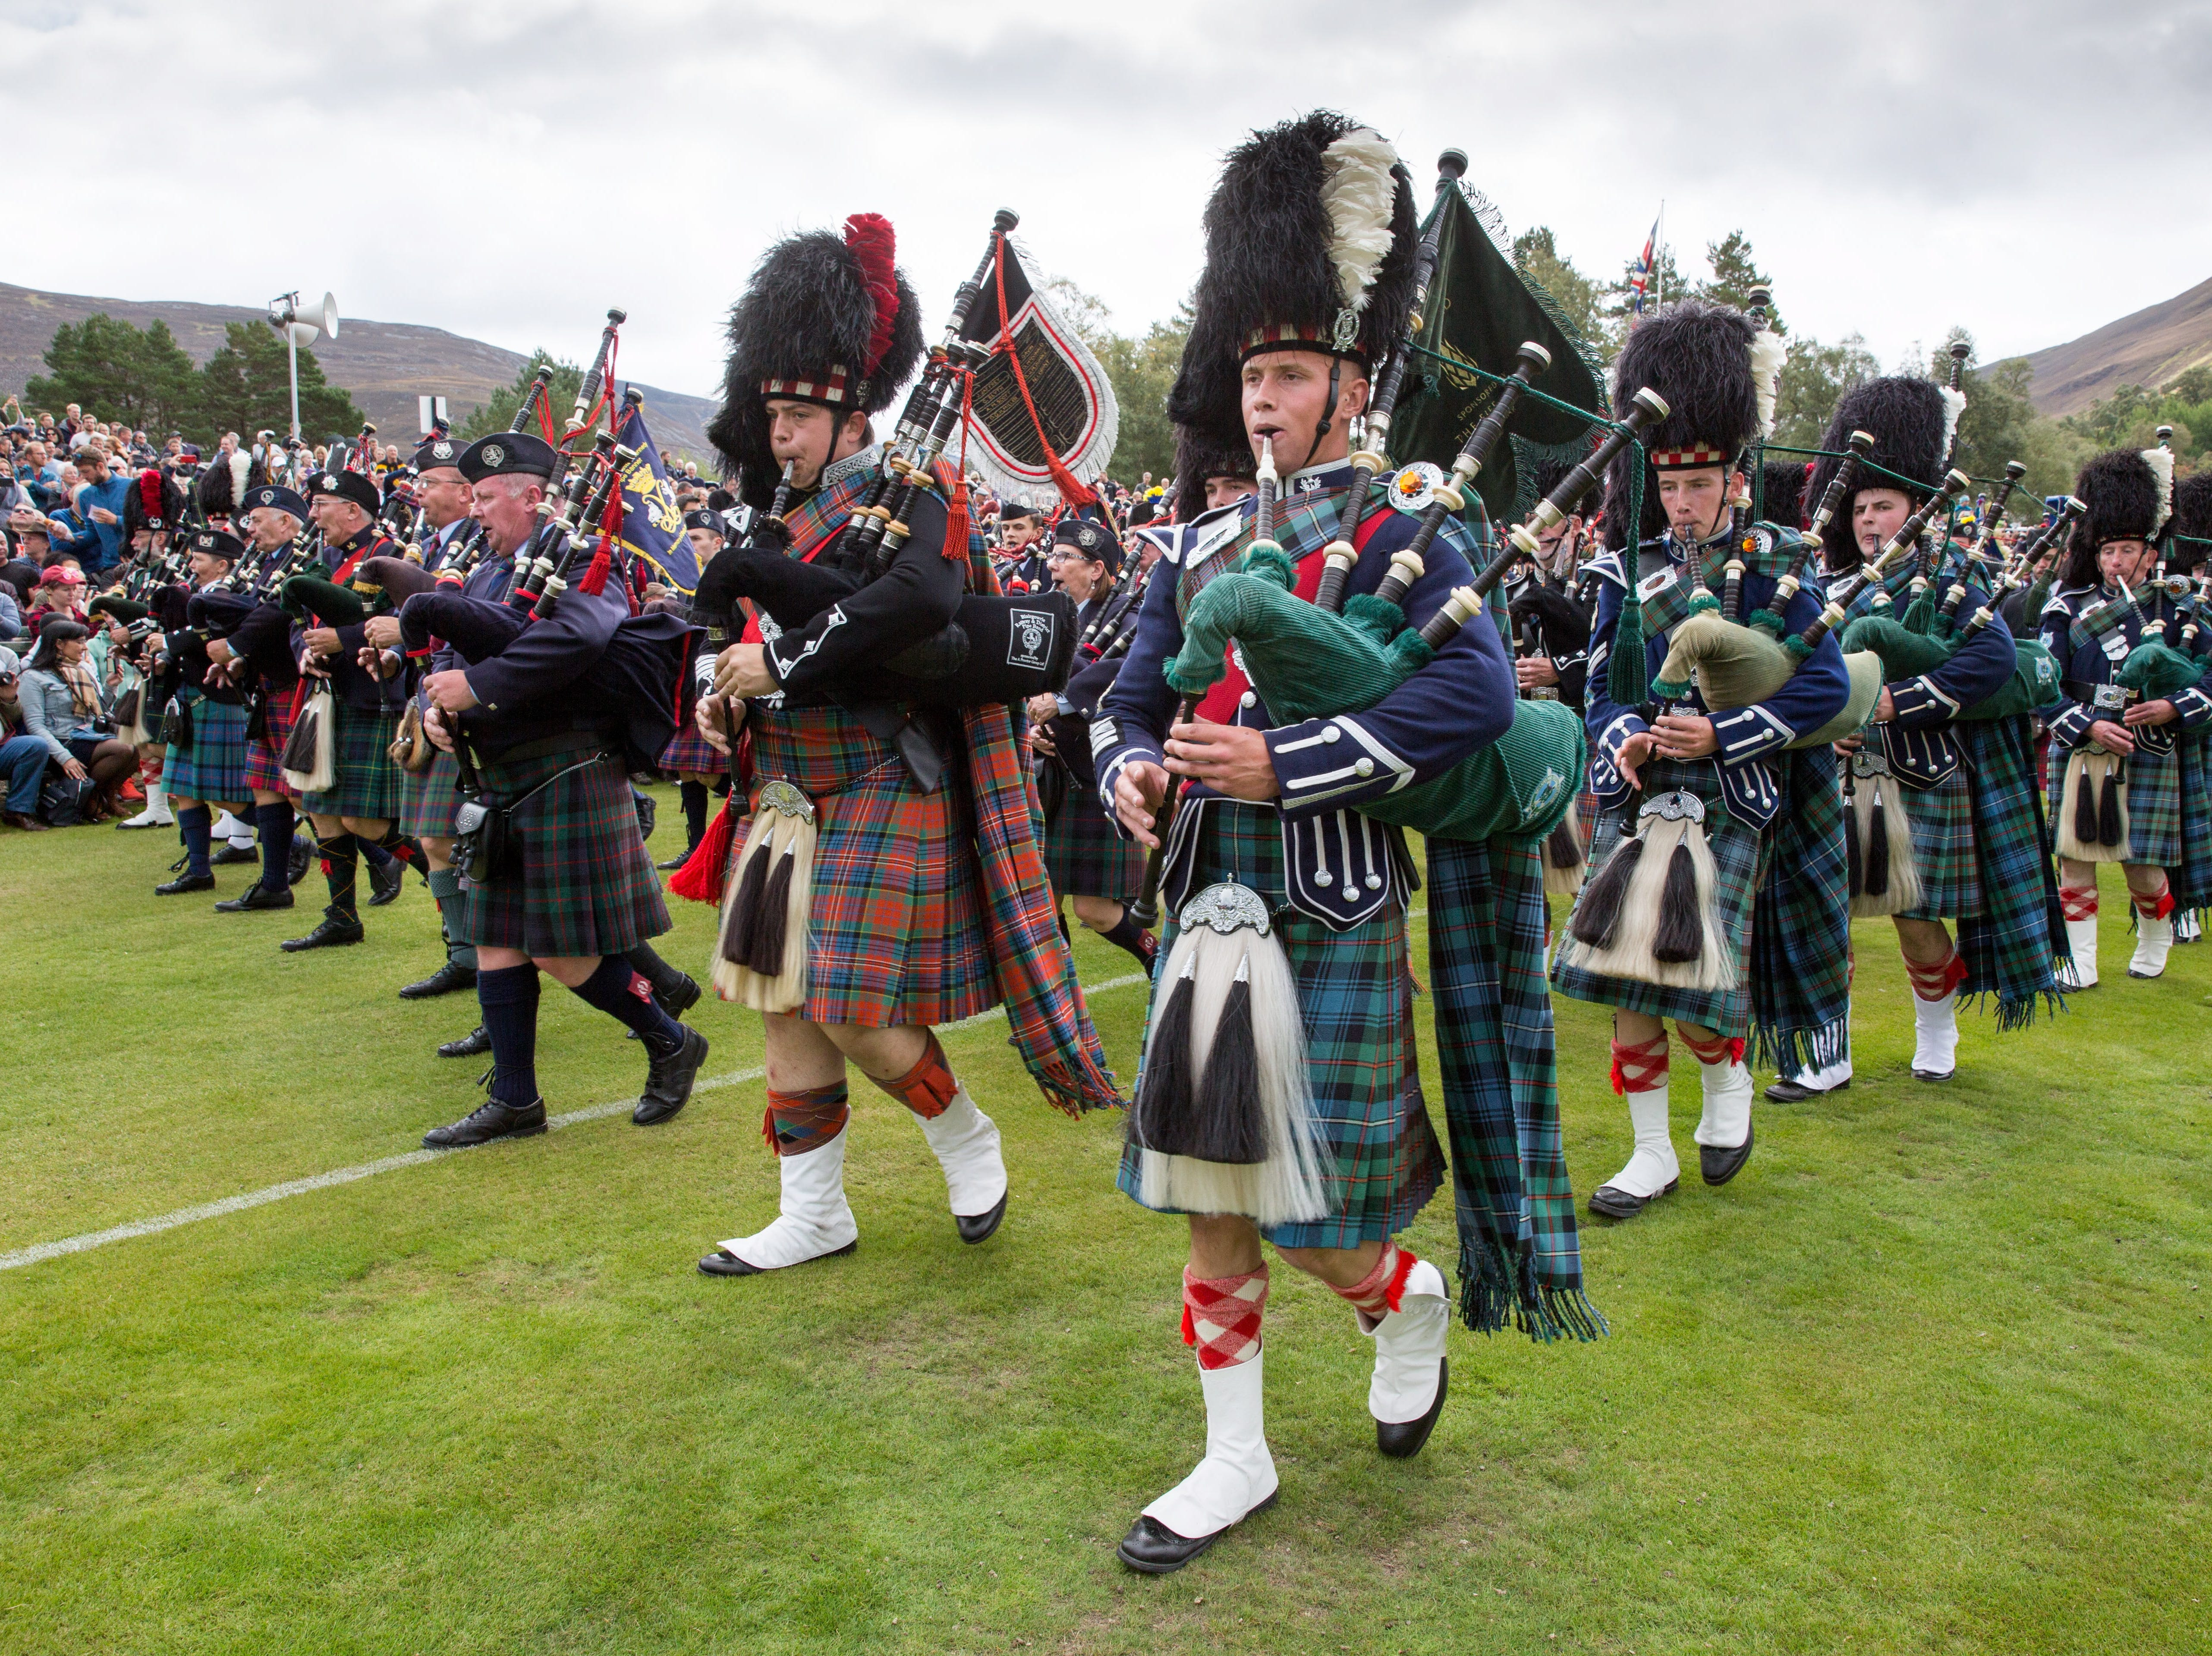 Pipe bands during the Braemar Gathering at The Princess Royal and Duke of Fife Memorial Park, in Braemar, Scotland on Sept. 1, 2018. The Braemar Gathering takes place annually on the first Saturday of the month of September.